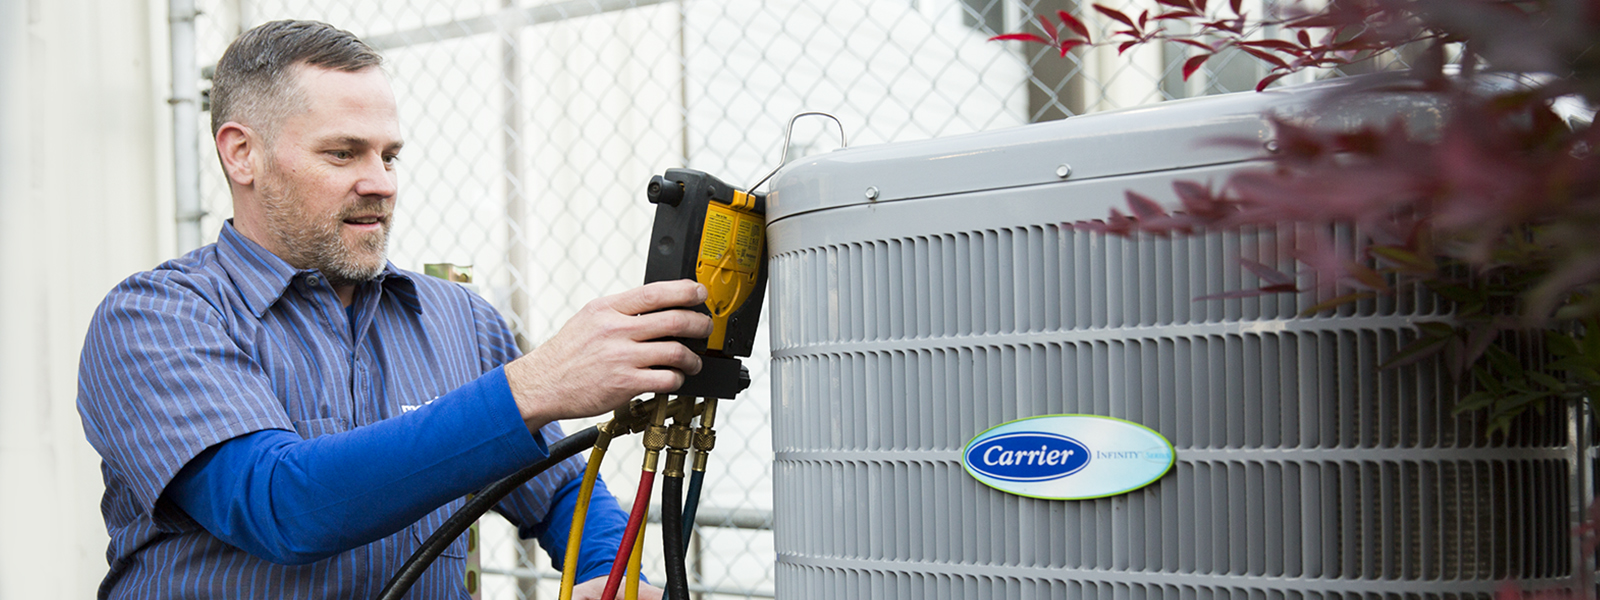 Marshall's Technician performing a Maintenance on a Carrier heat pump